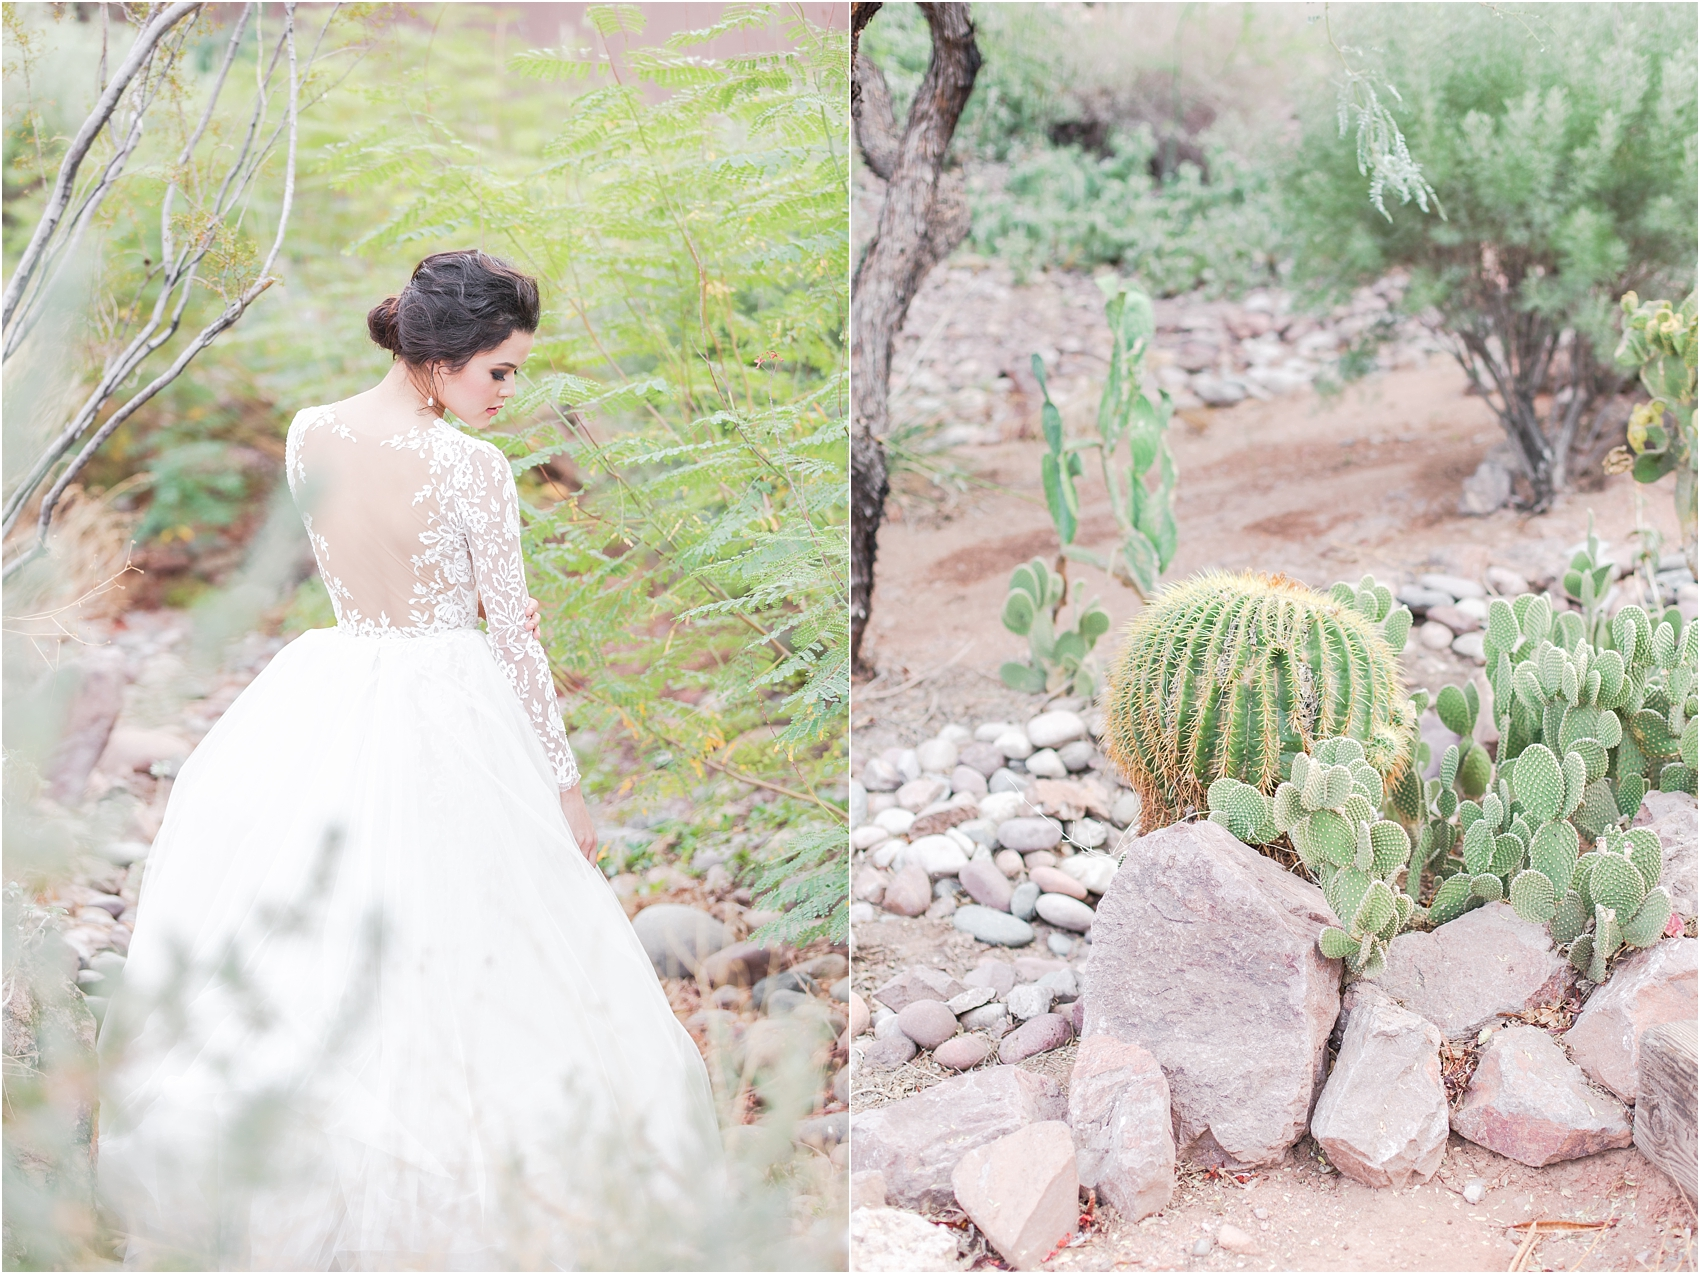 paris-and-ballerina-inspired-bride-wedding-photos-at-phoenix-marriott-tempe-at-the-buttes-in-tempe-arizona-by-courtney-carolyn-photography_0010.jpg